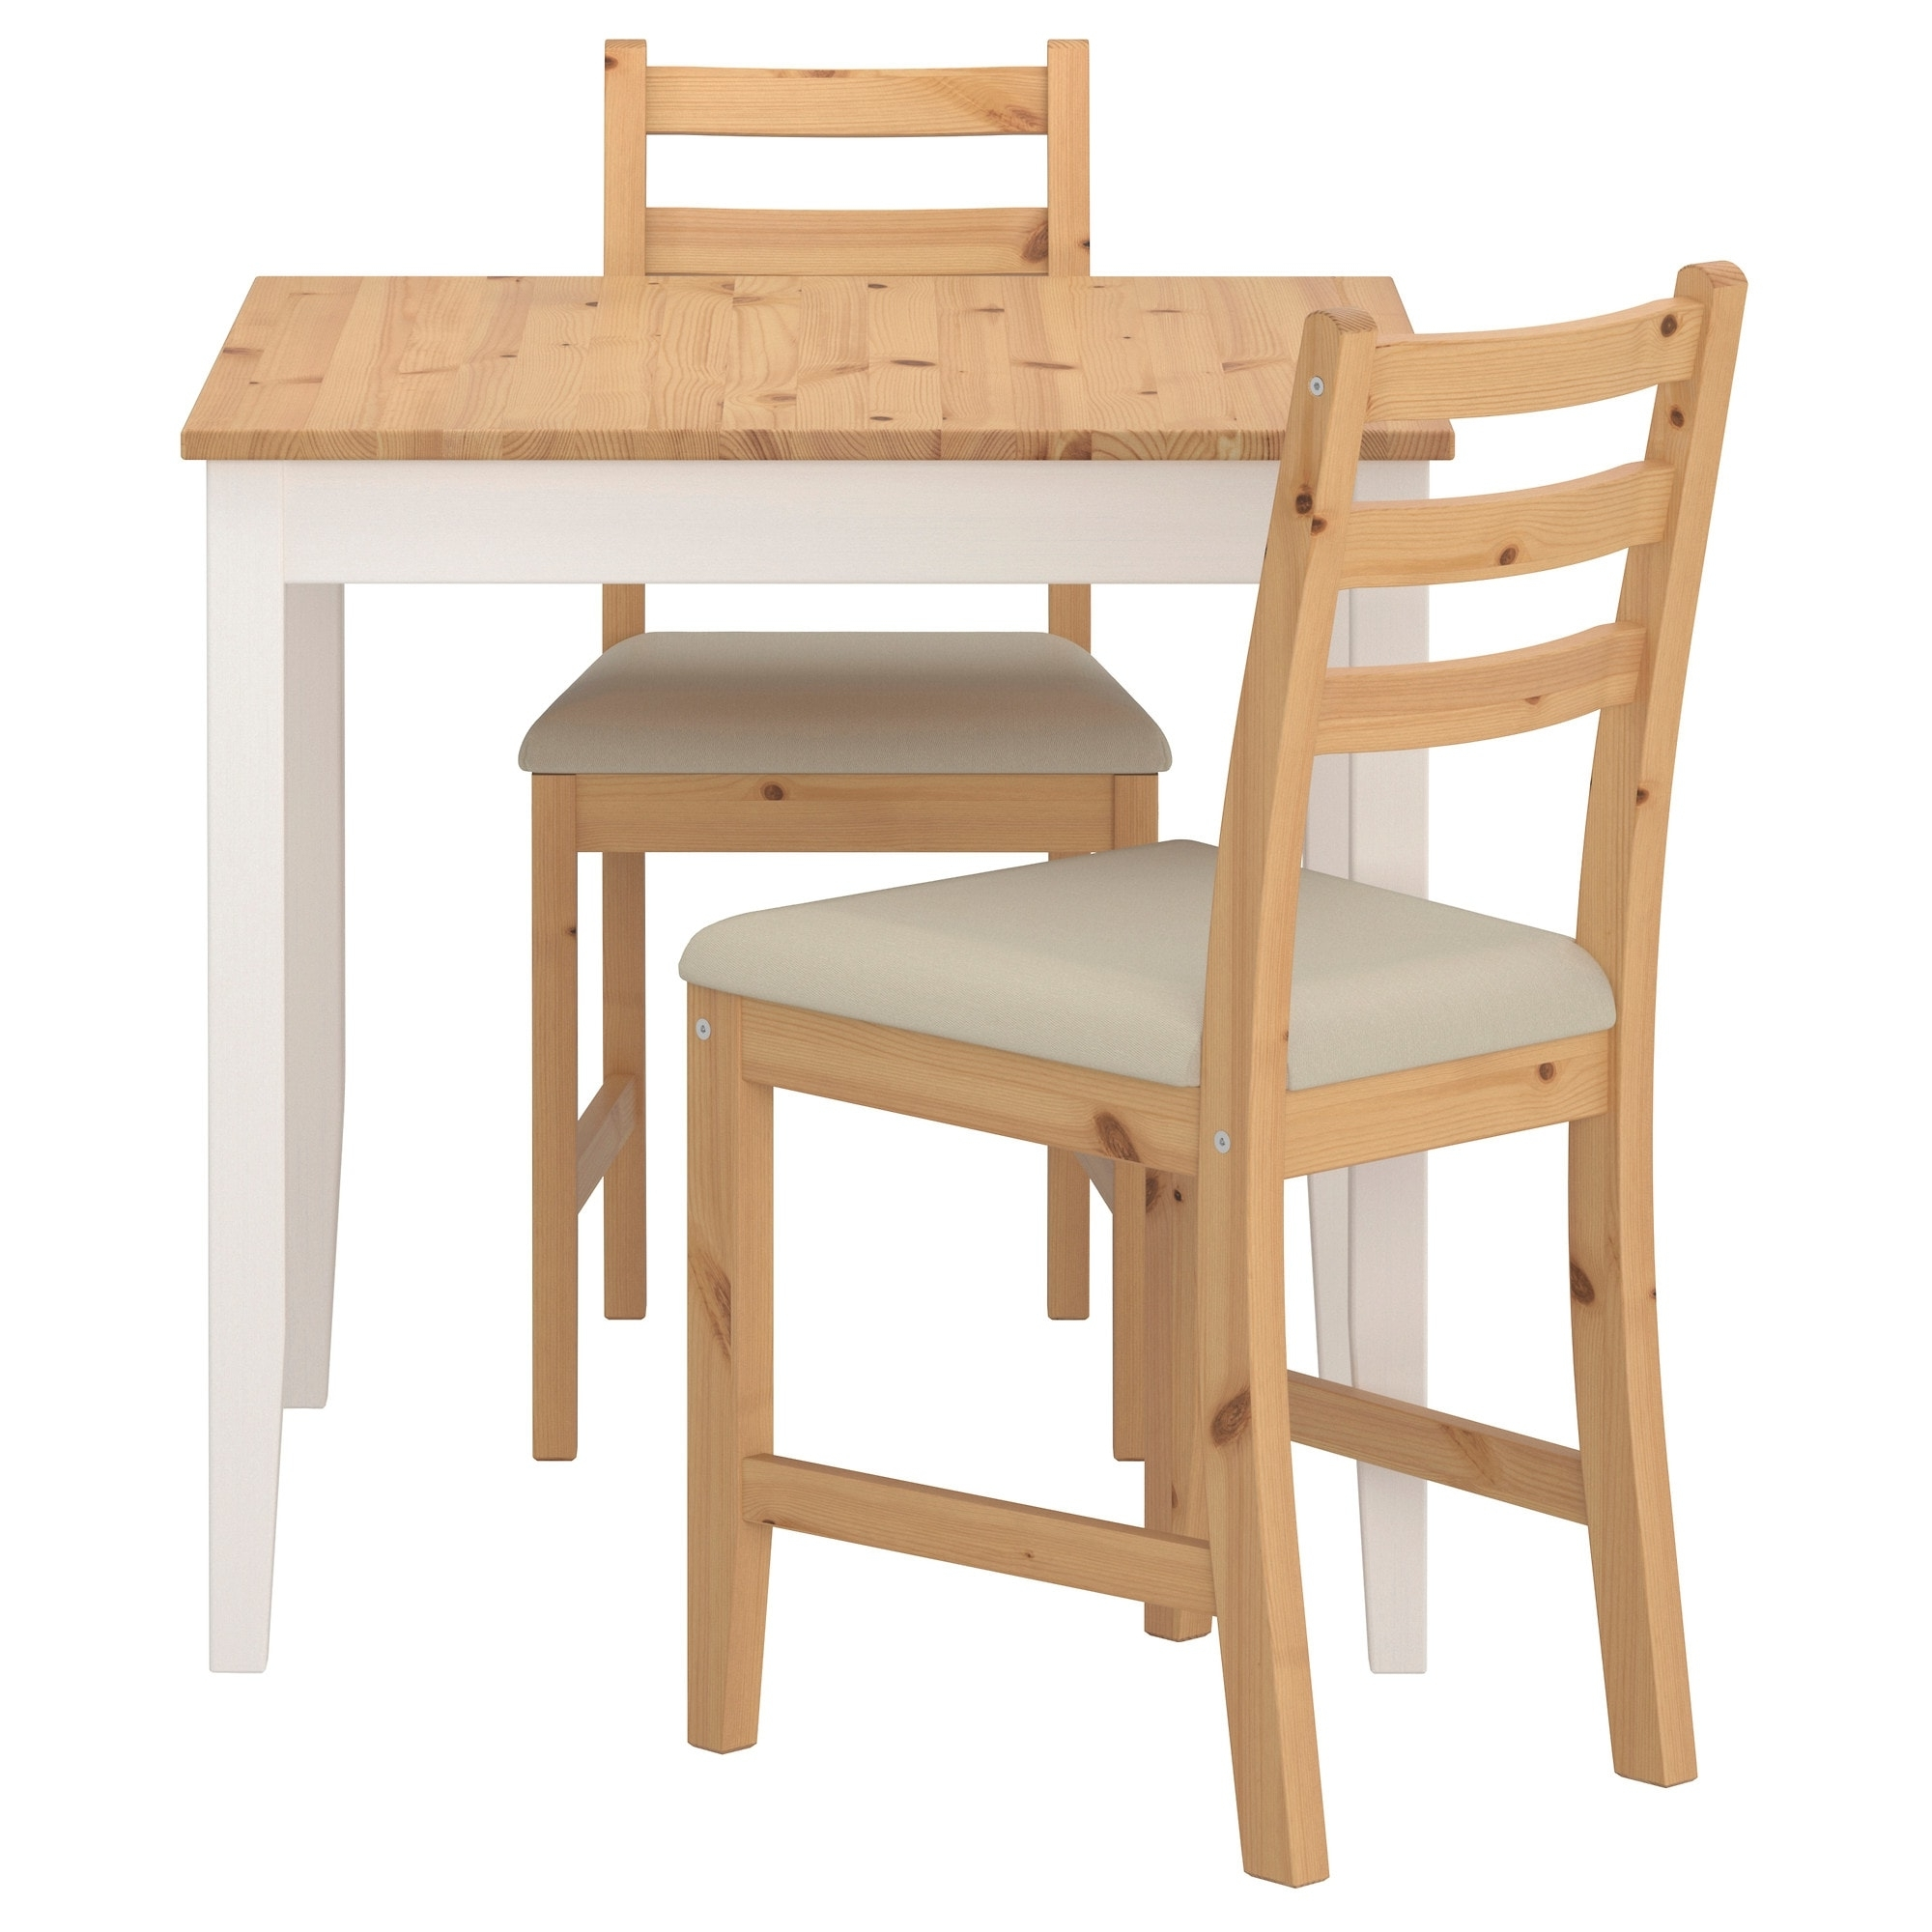 Most Recent Compact Dining Tables And Chairs Regarding Dining Table Sets & Dining Room Sets (View 5 of 25)